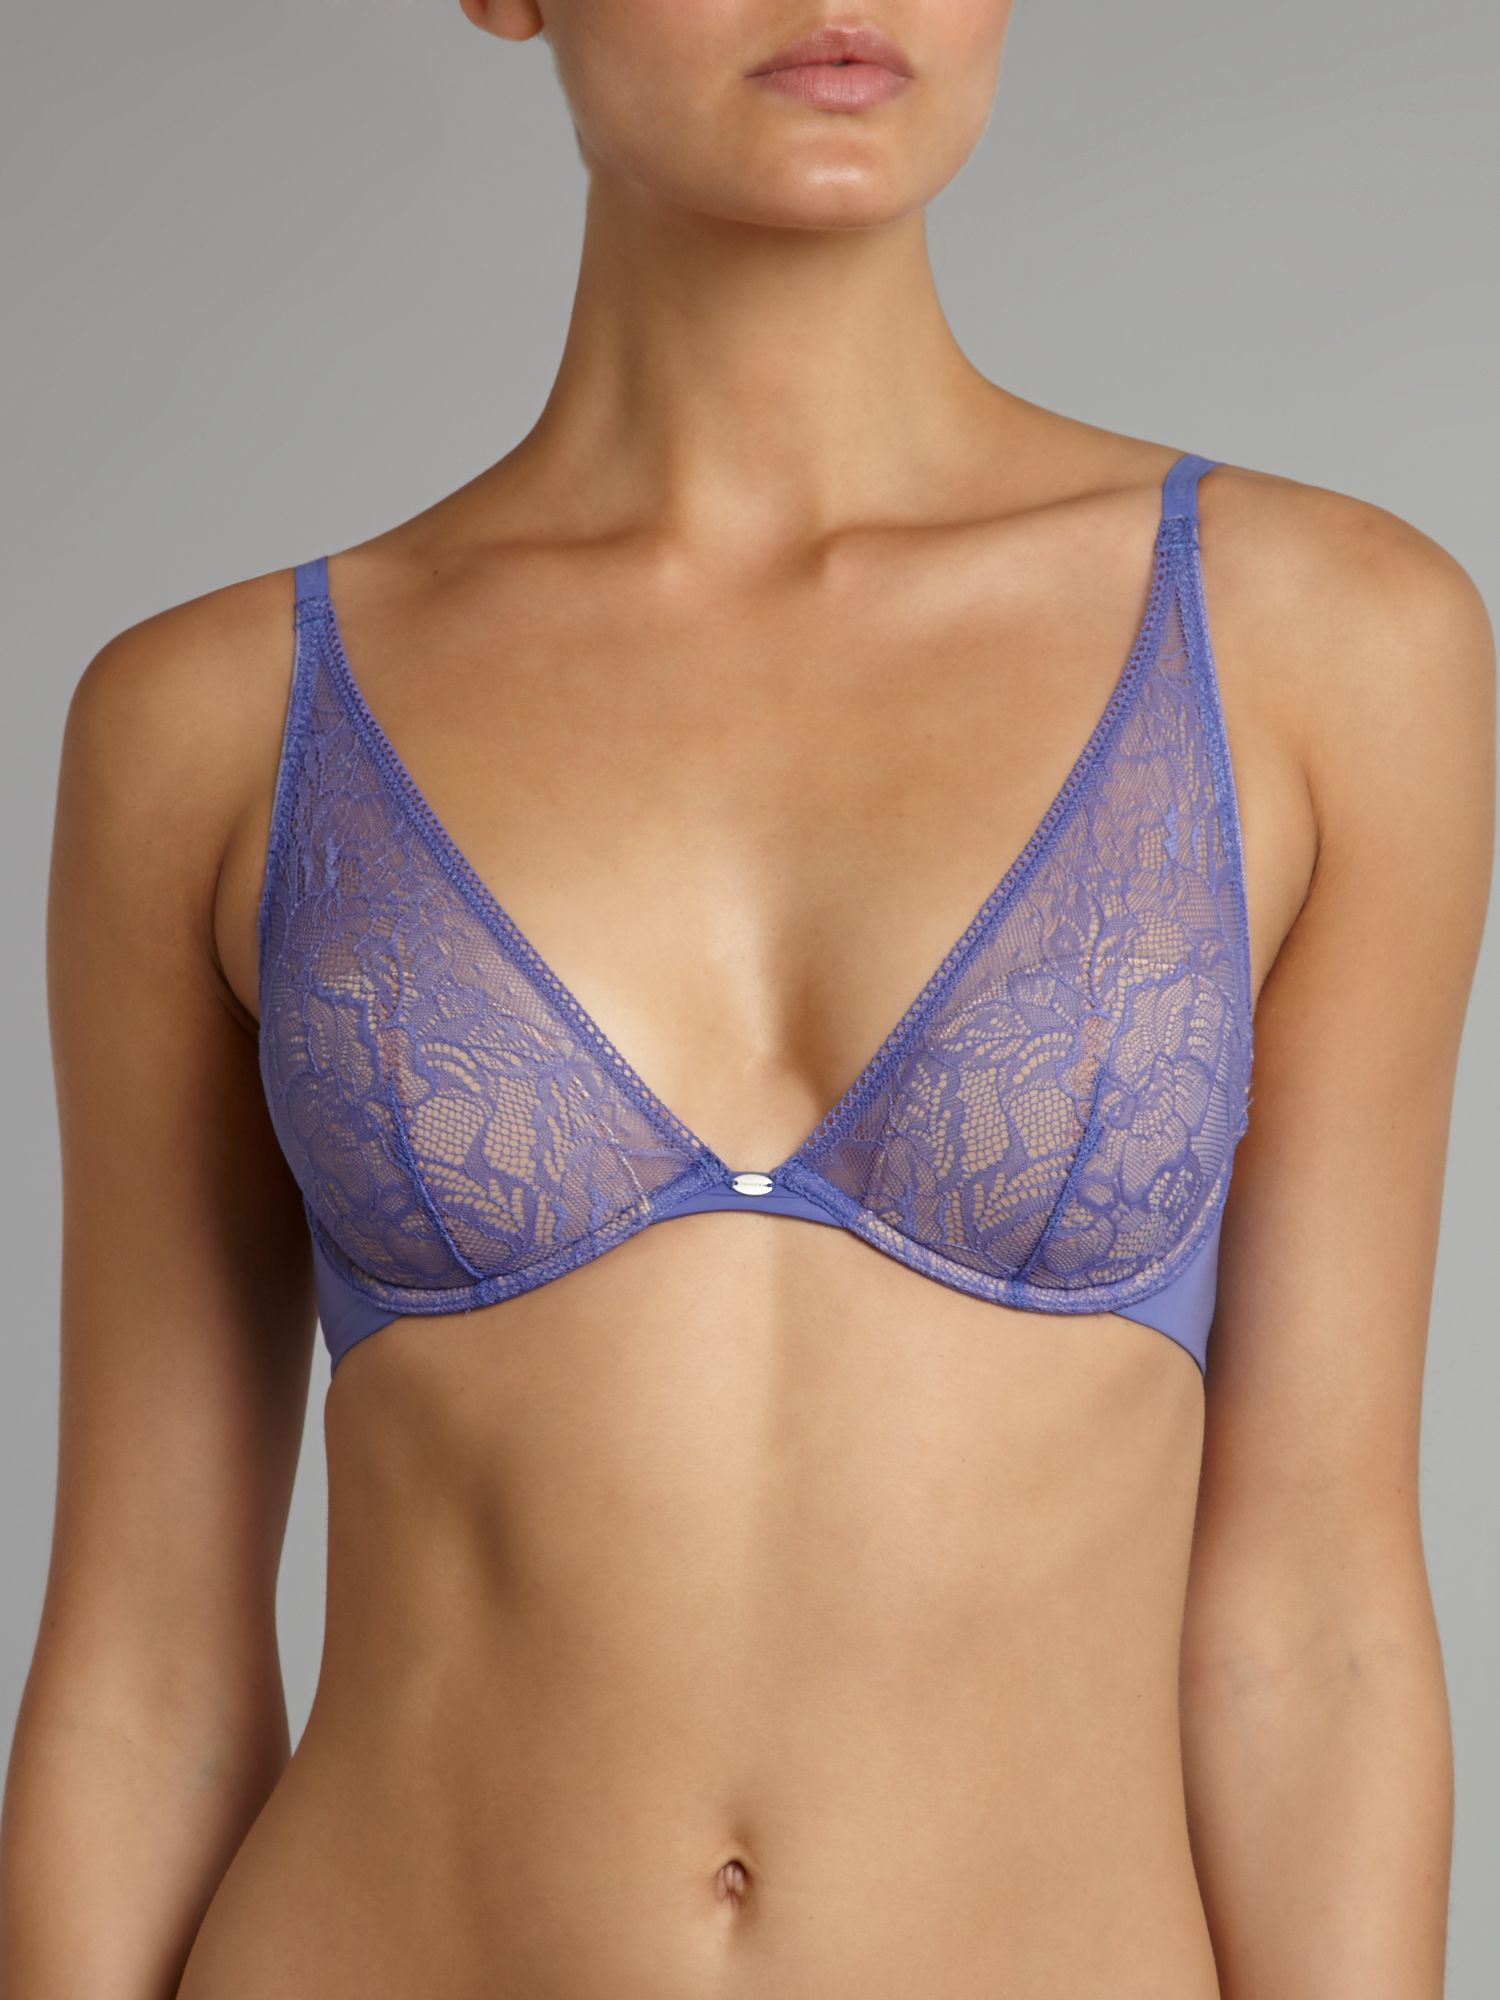 Naked glamour provocative plunge bra